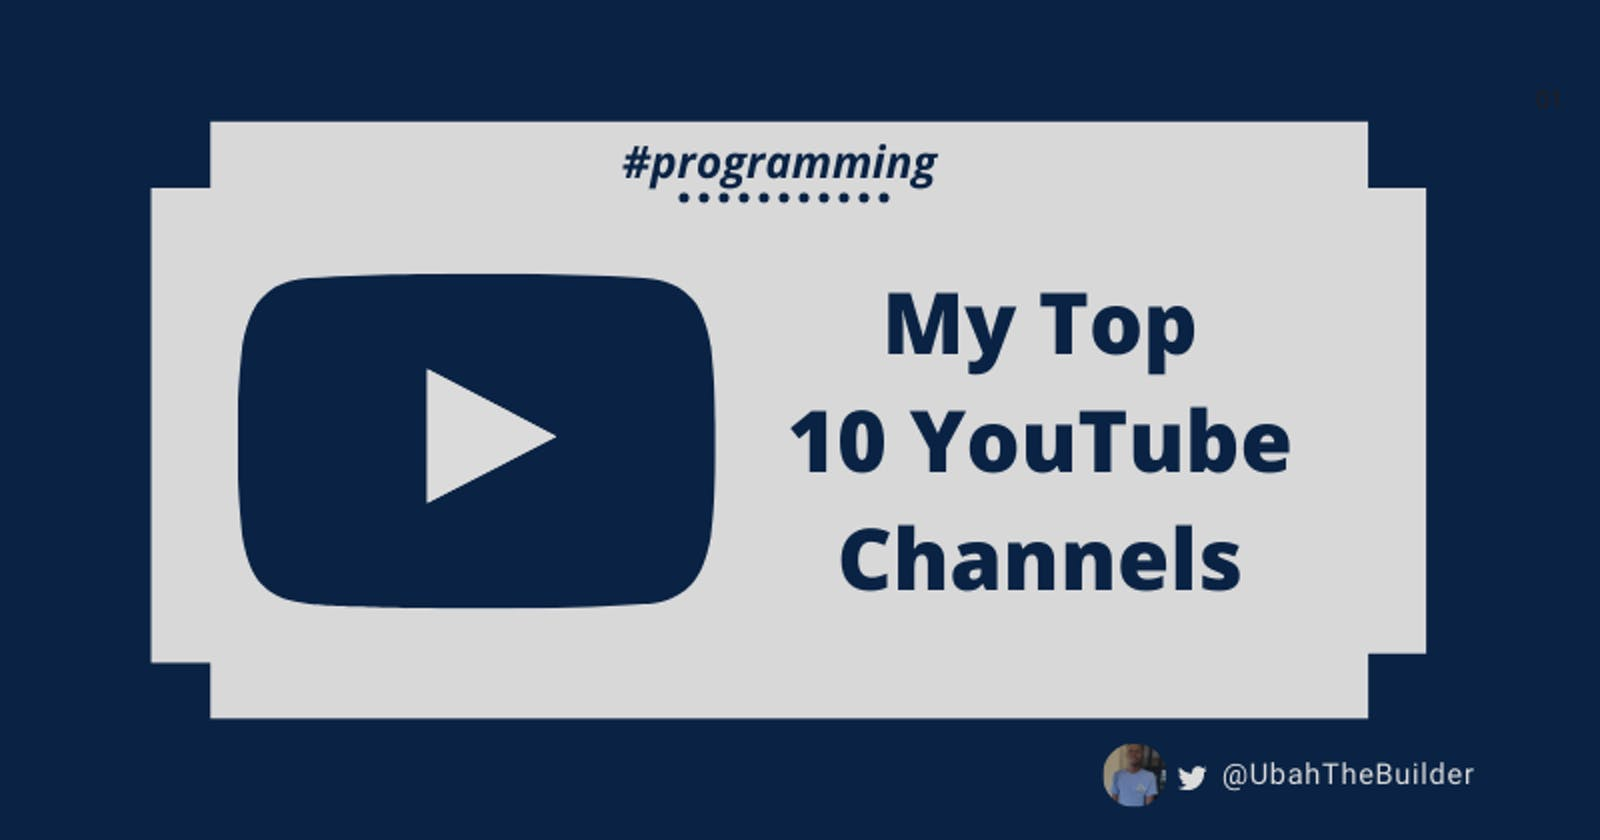 My Top 10 YouTube Channels for Programmers